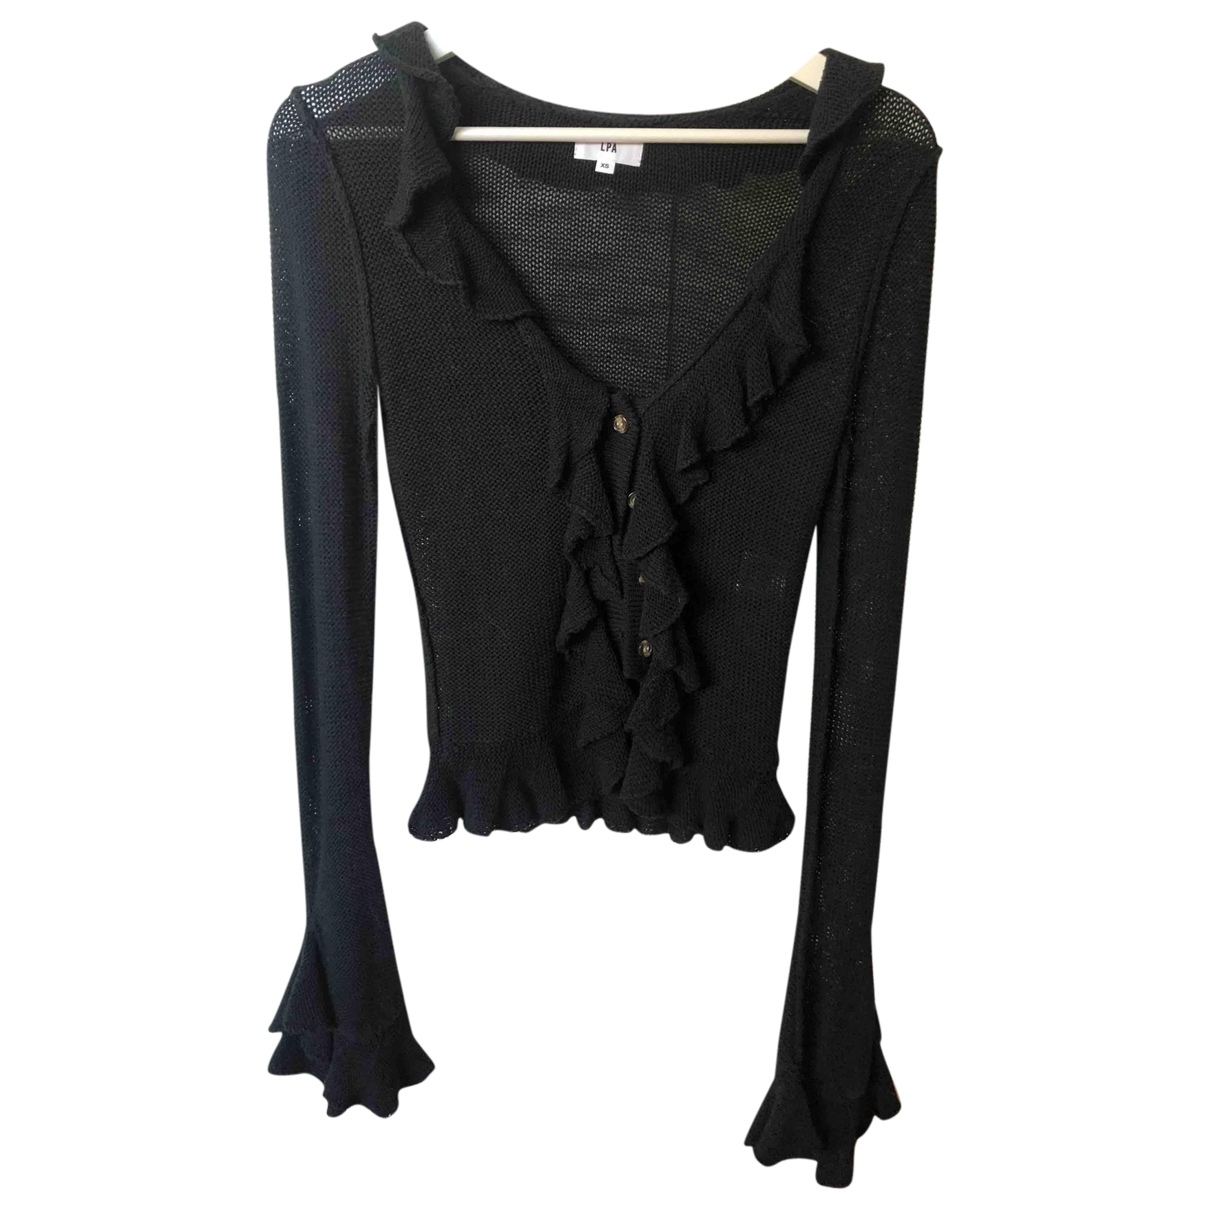 Lpa \N Black Cotton Knitwear for Women XS International